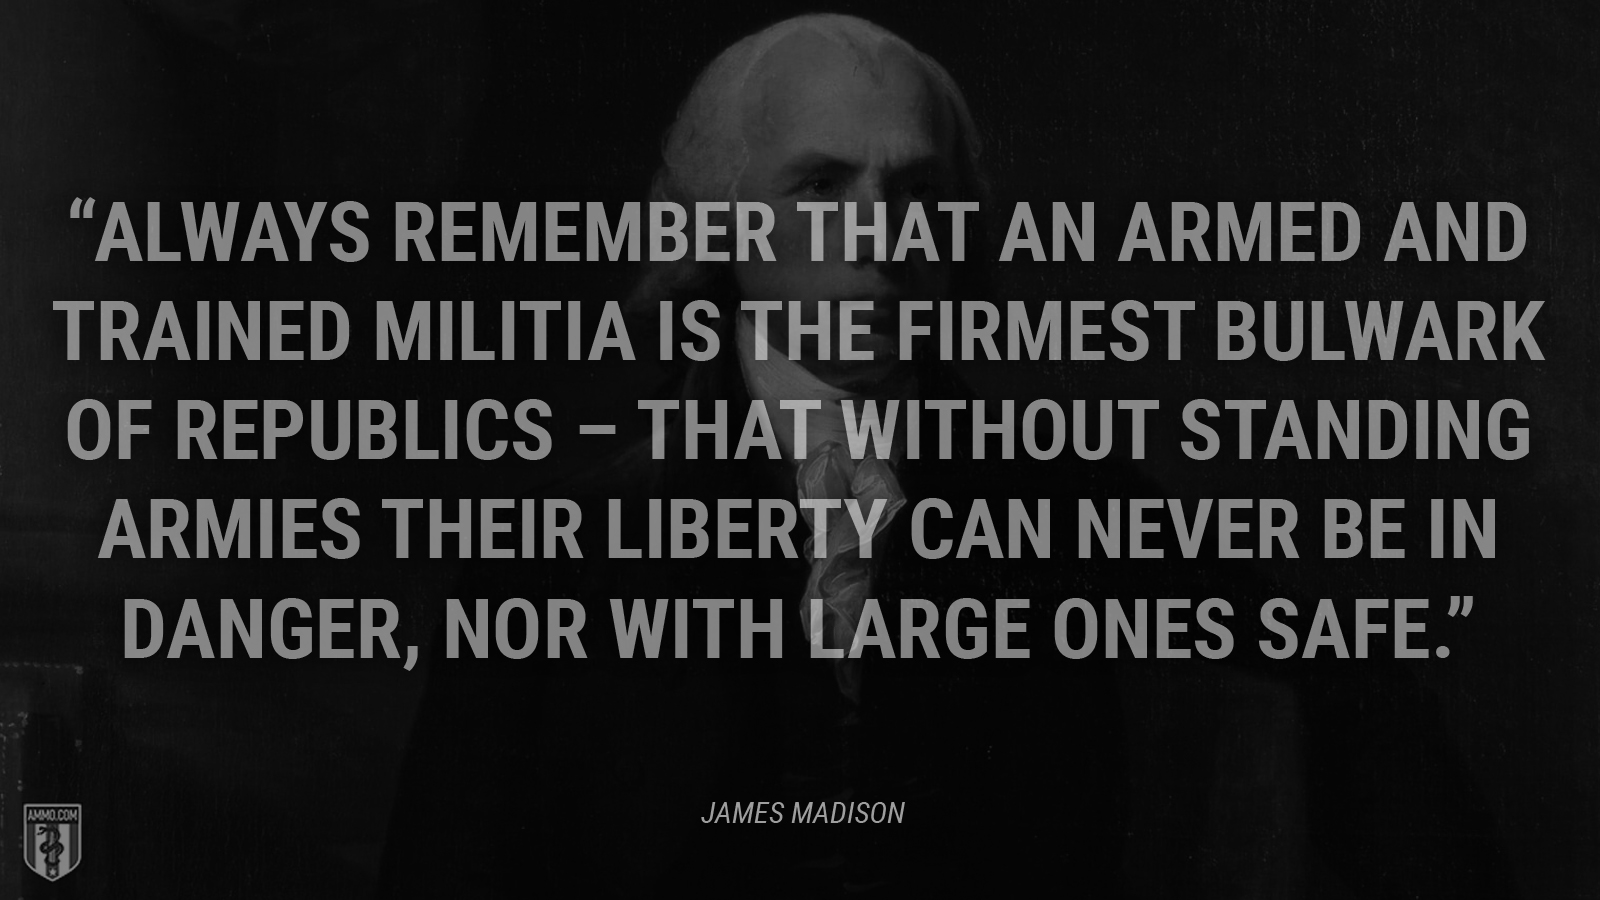 """Always remember that an armed and trained militia is the firmest bulwark of republics – that without standing armies their liberty can never be in danger, nor with large ones safe."" - James Madison"